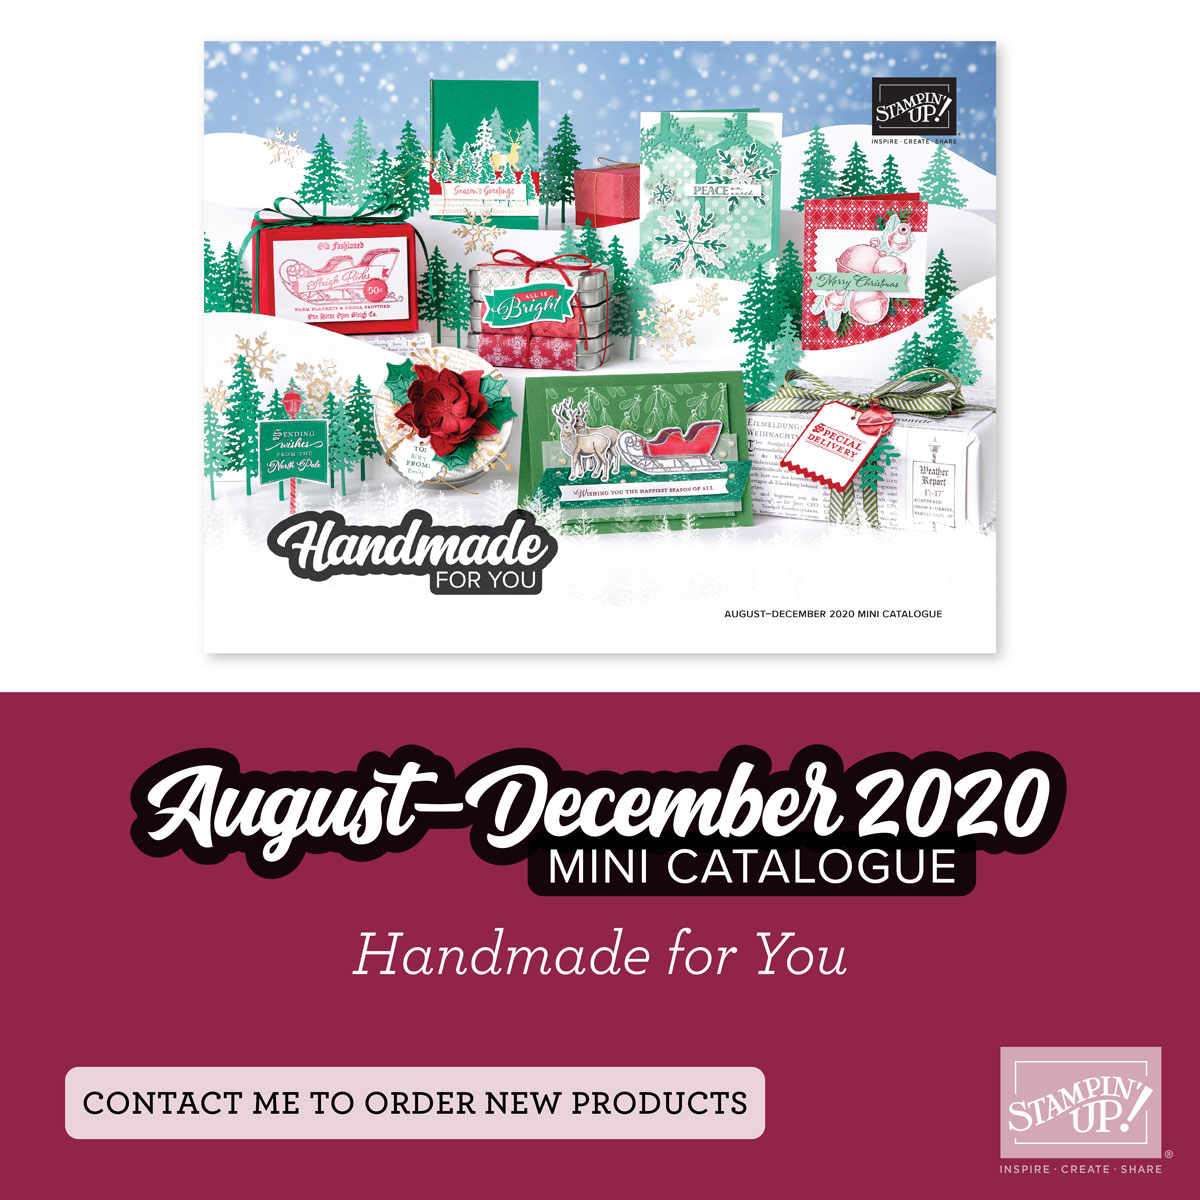 Augustus December 2020 Mini Catalogus